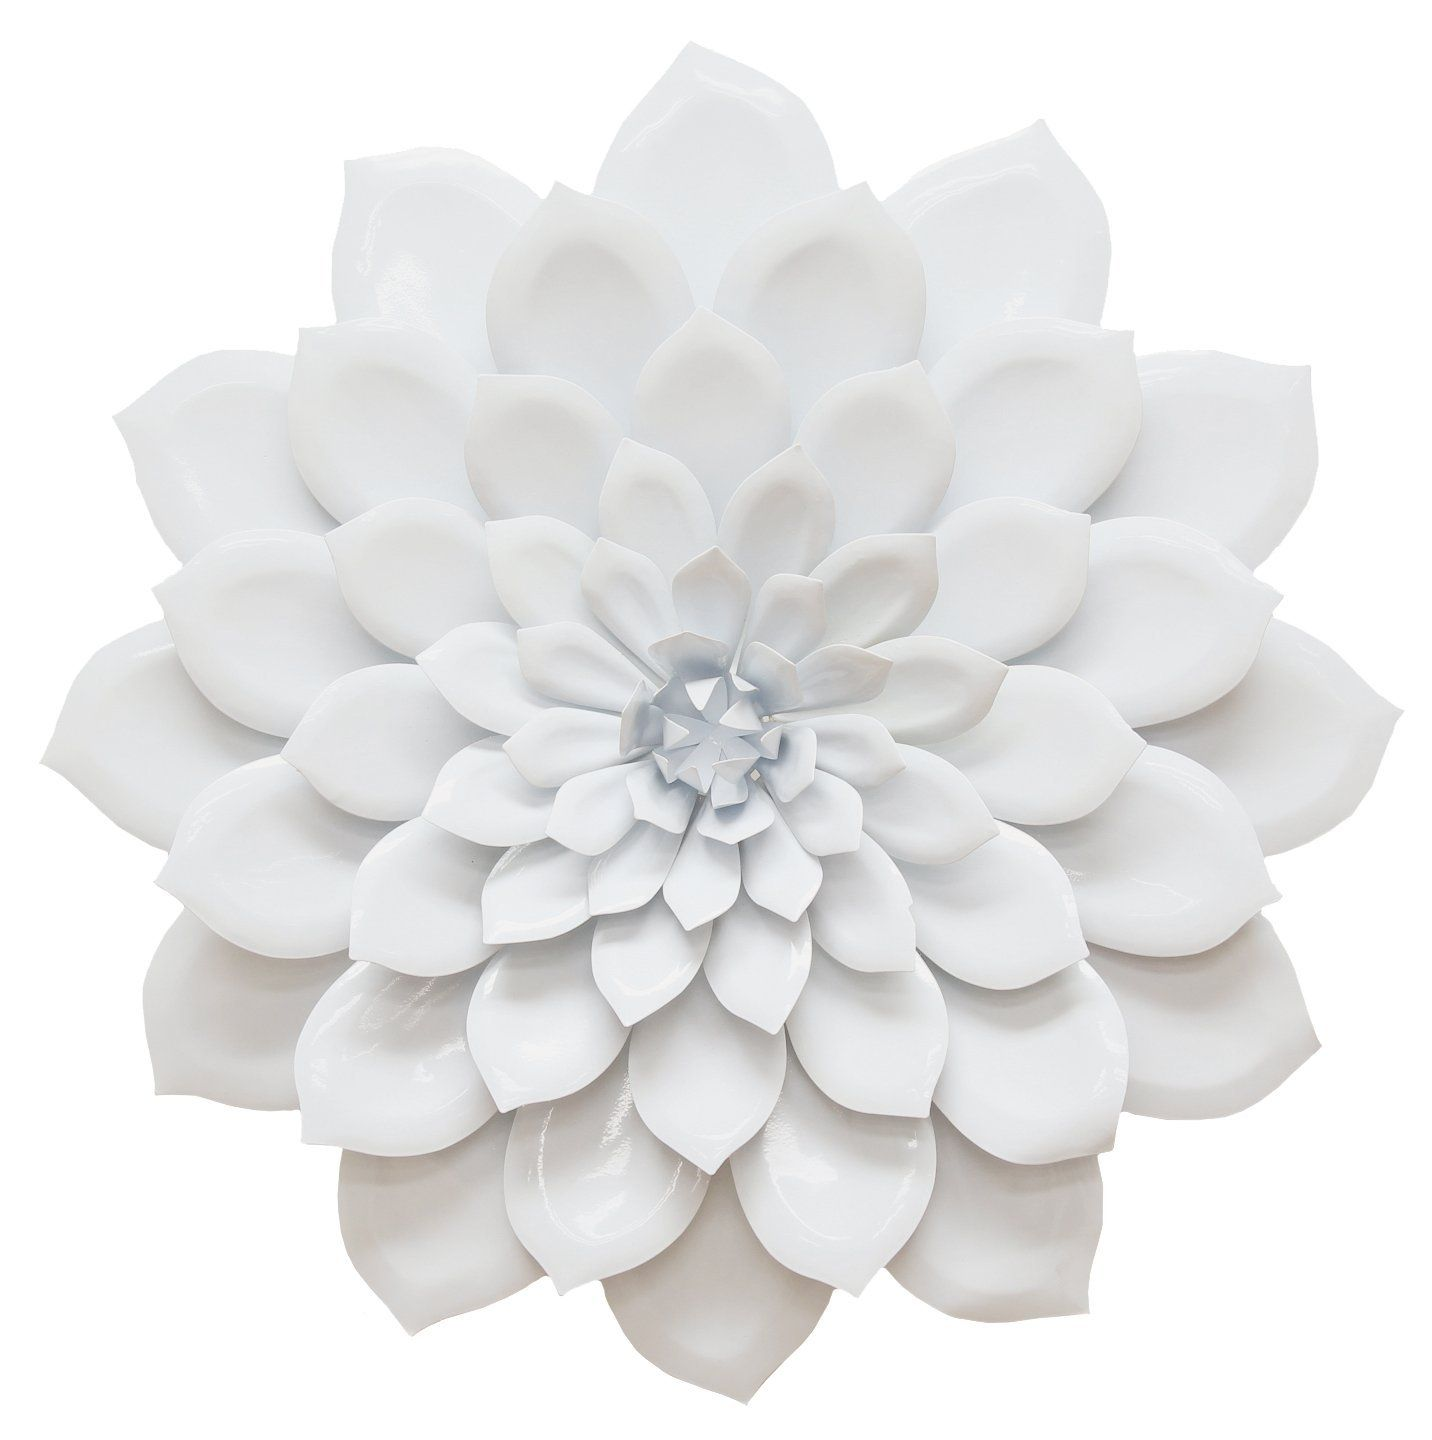 Stratton Home Decor Shd0018 Layered Flower Wall More Info Could Be Found At